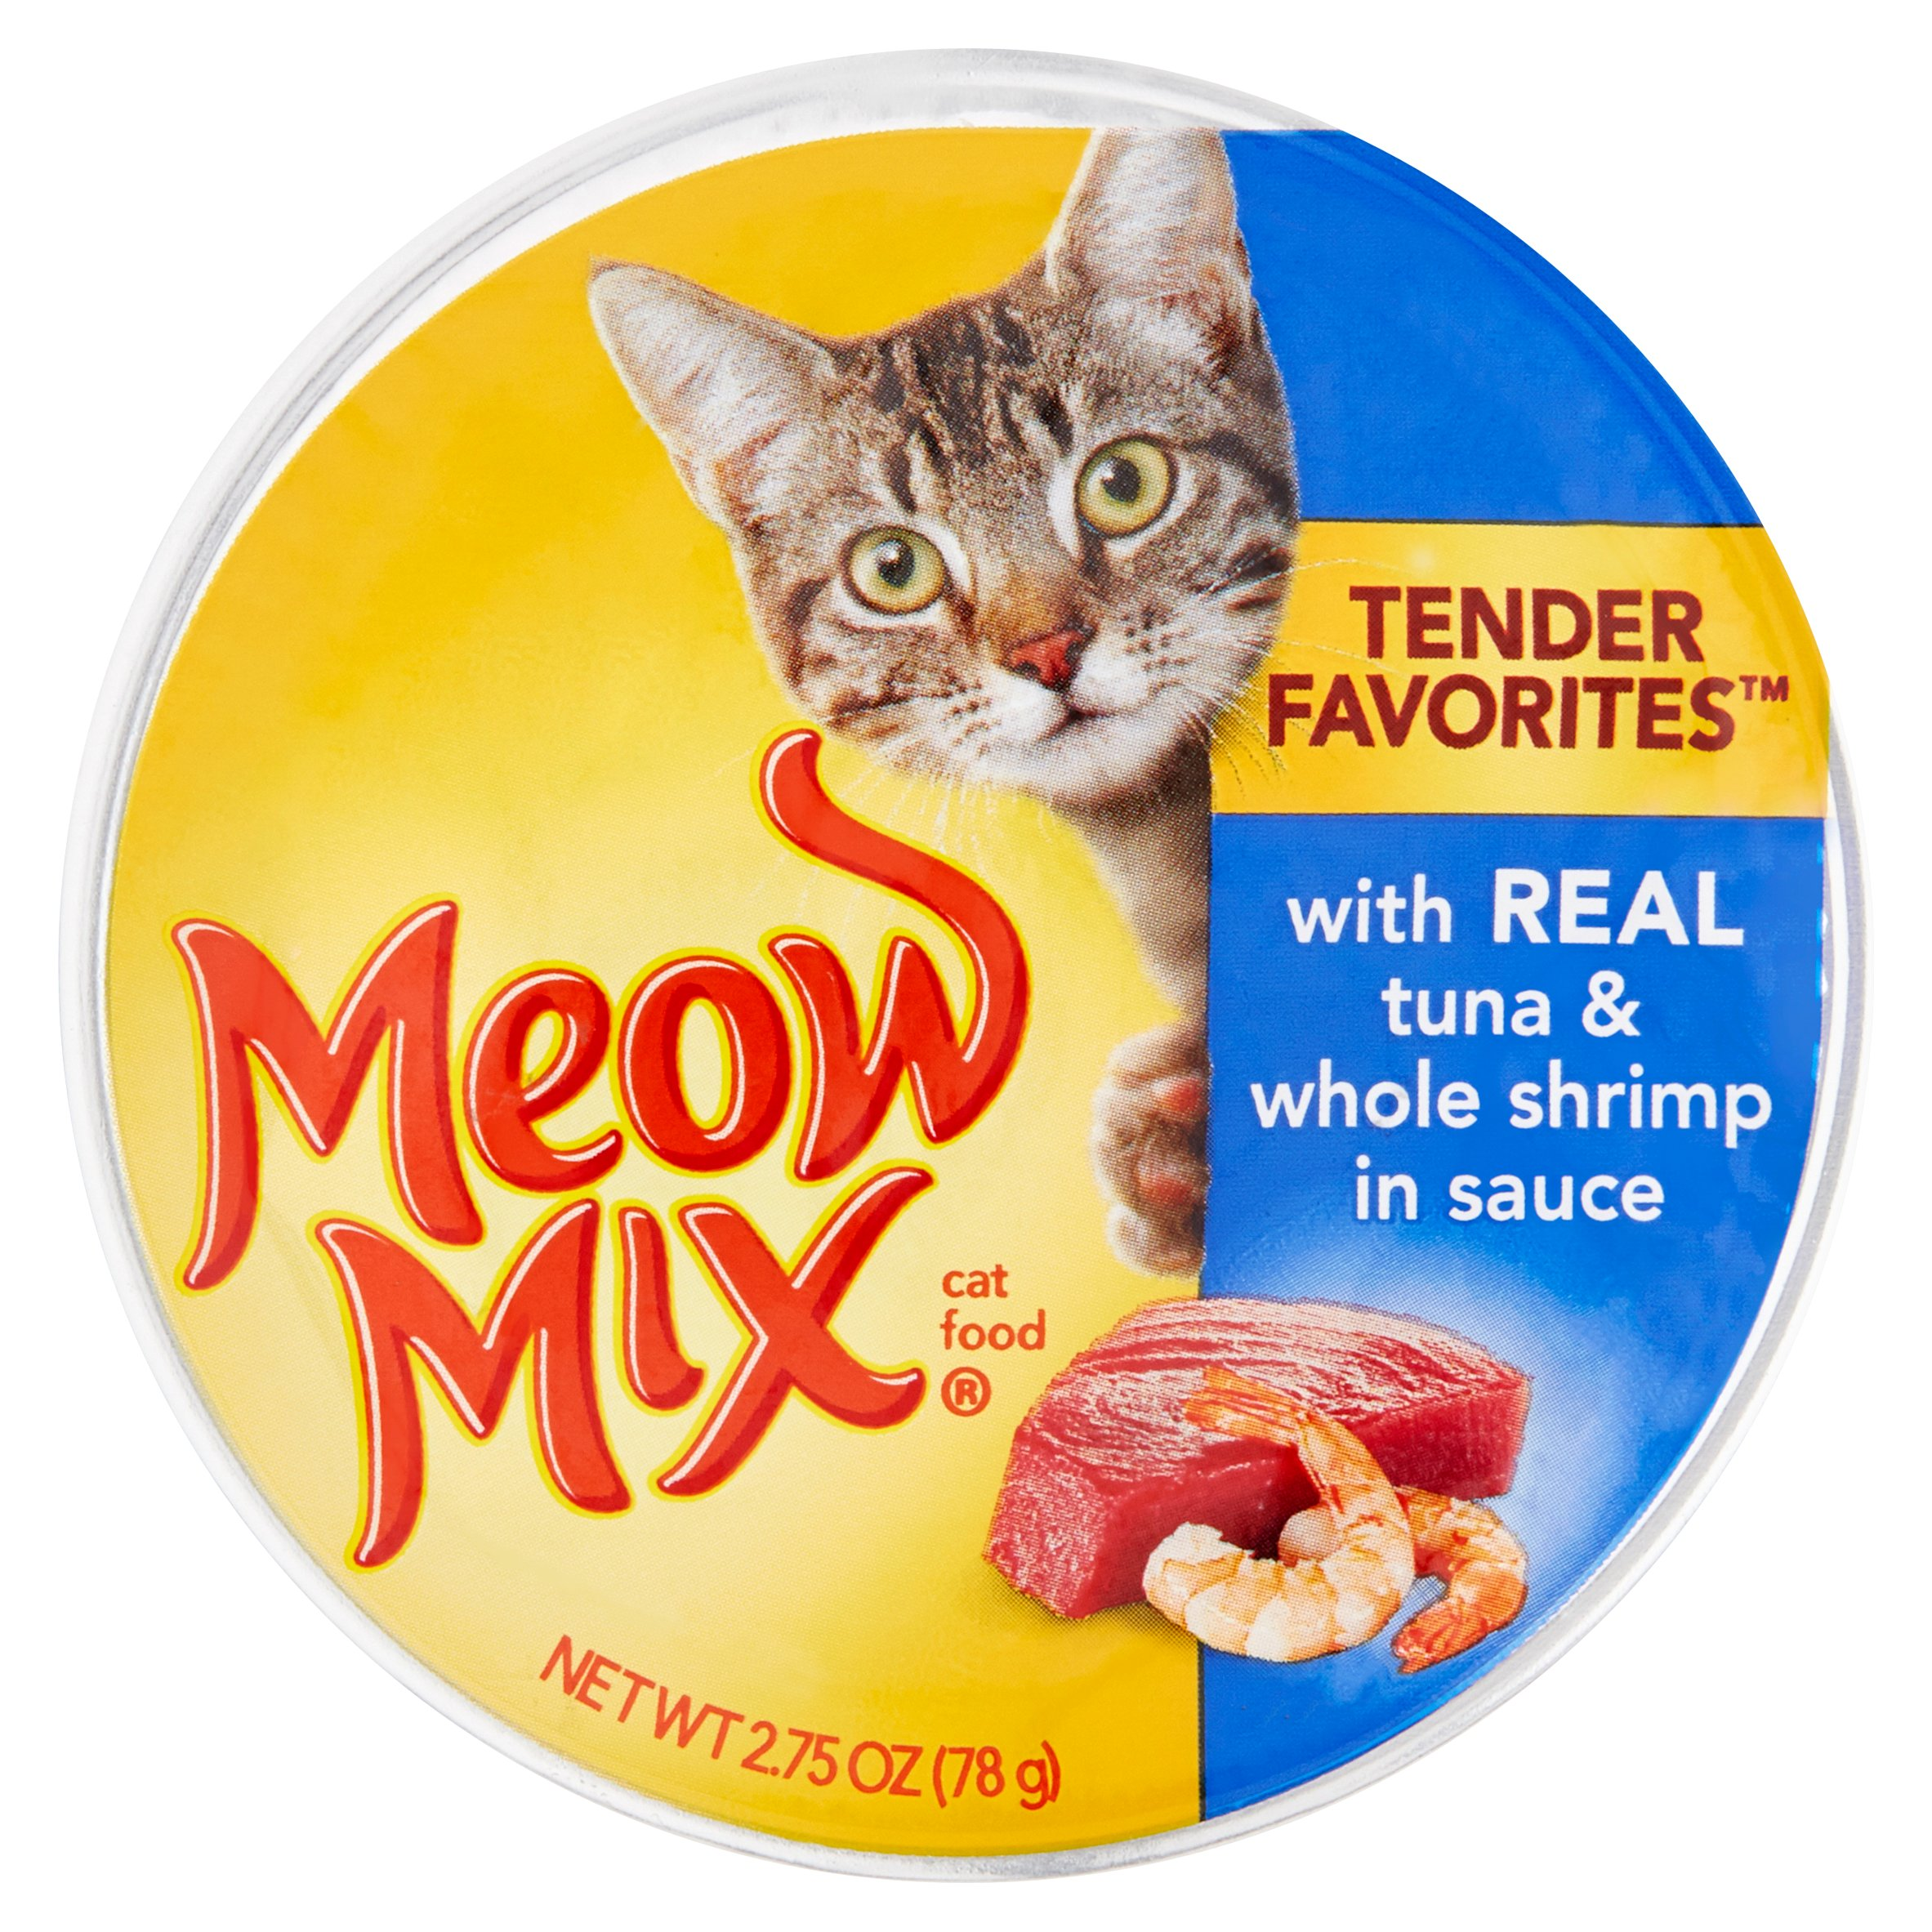 Meow Mix Tender Favorites with Real Tuna & Whole Shrimp in Sauce Cat Food, 2.75 oz